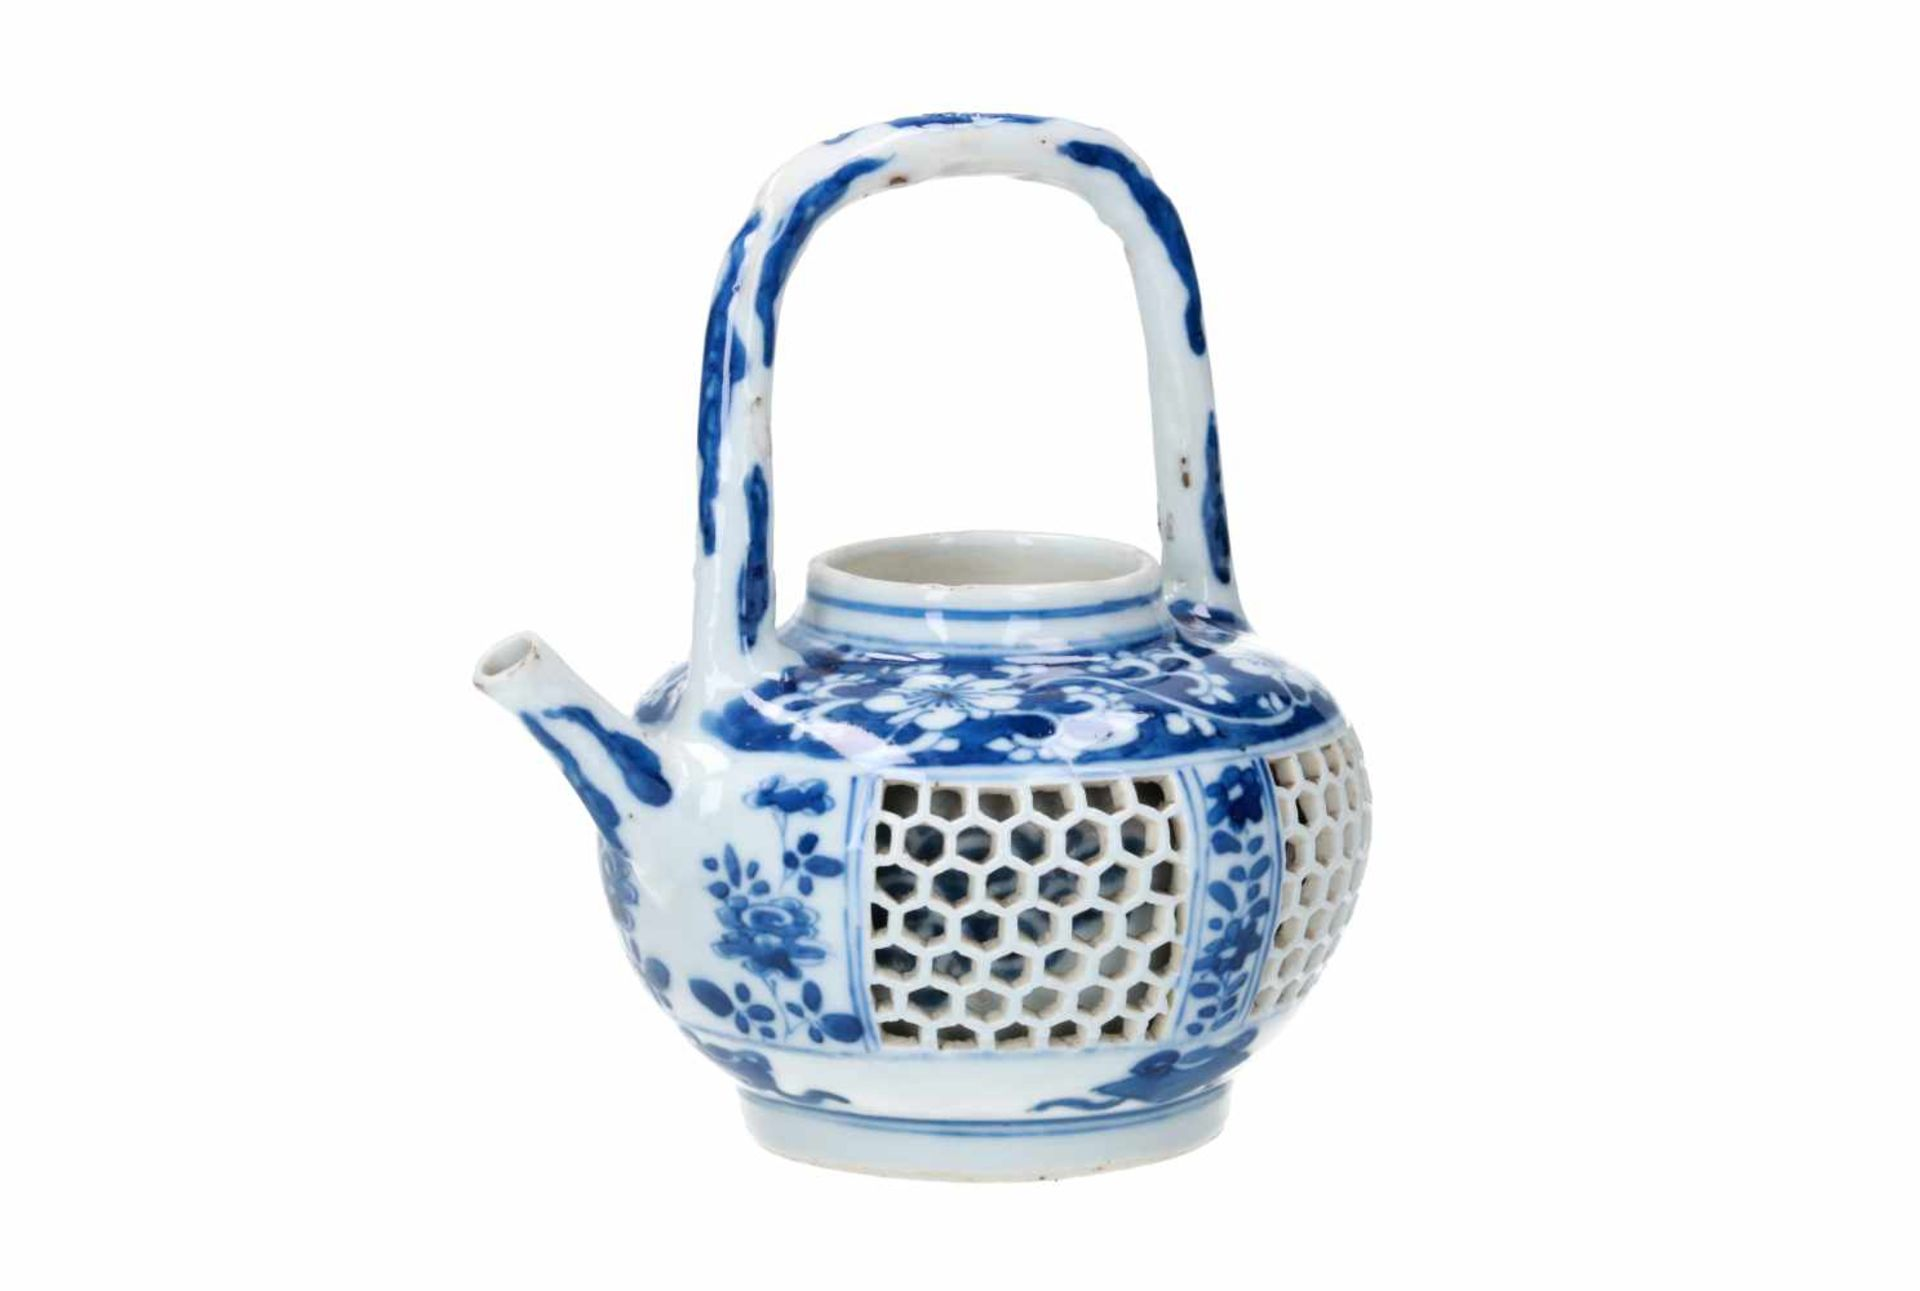 A blue and white porcelain teapot with open work belly, decorated with flowers and censers. Cover - Bild 5 aus 5